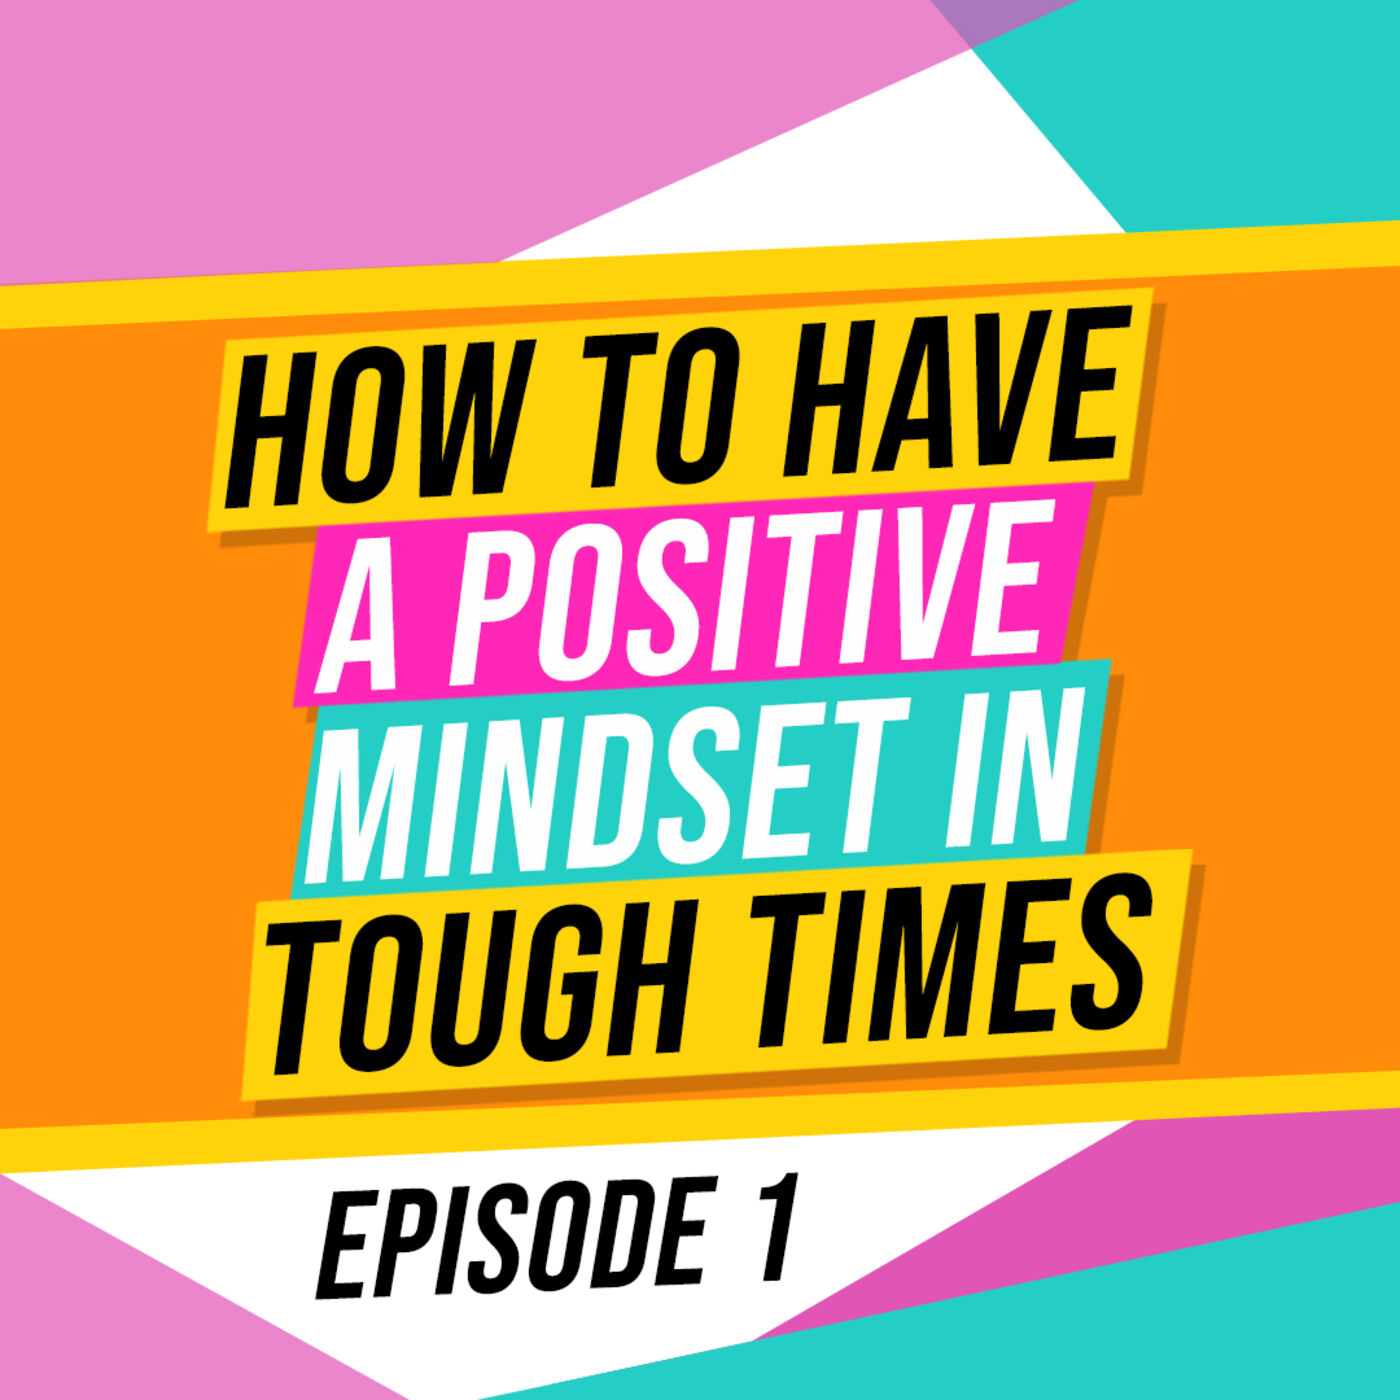 How to have a Positive Mindset in Tough Times?